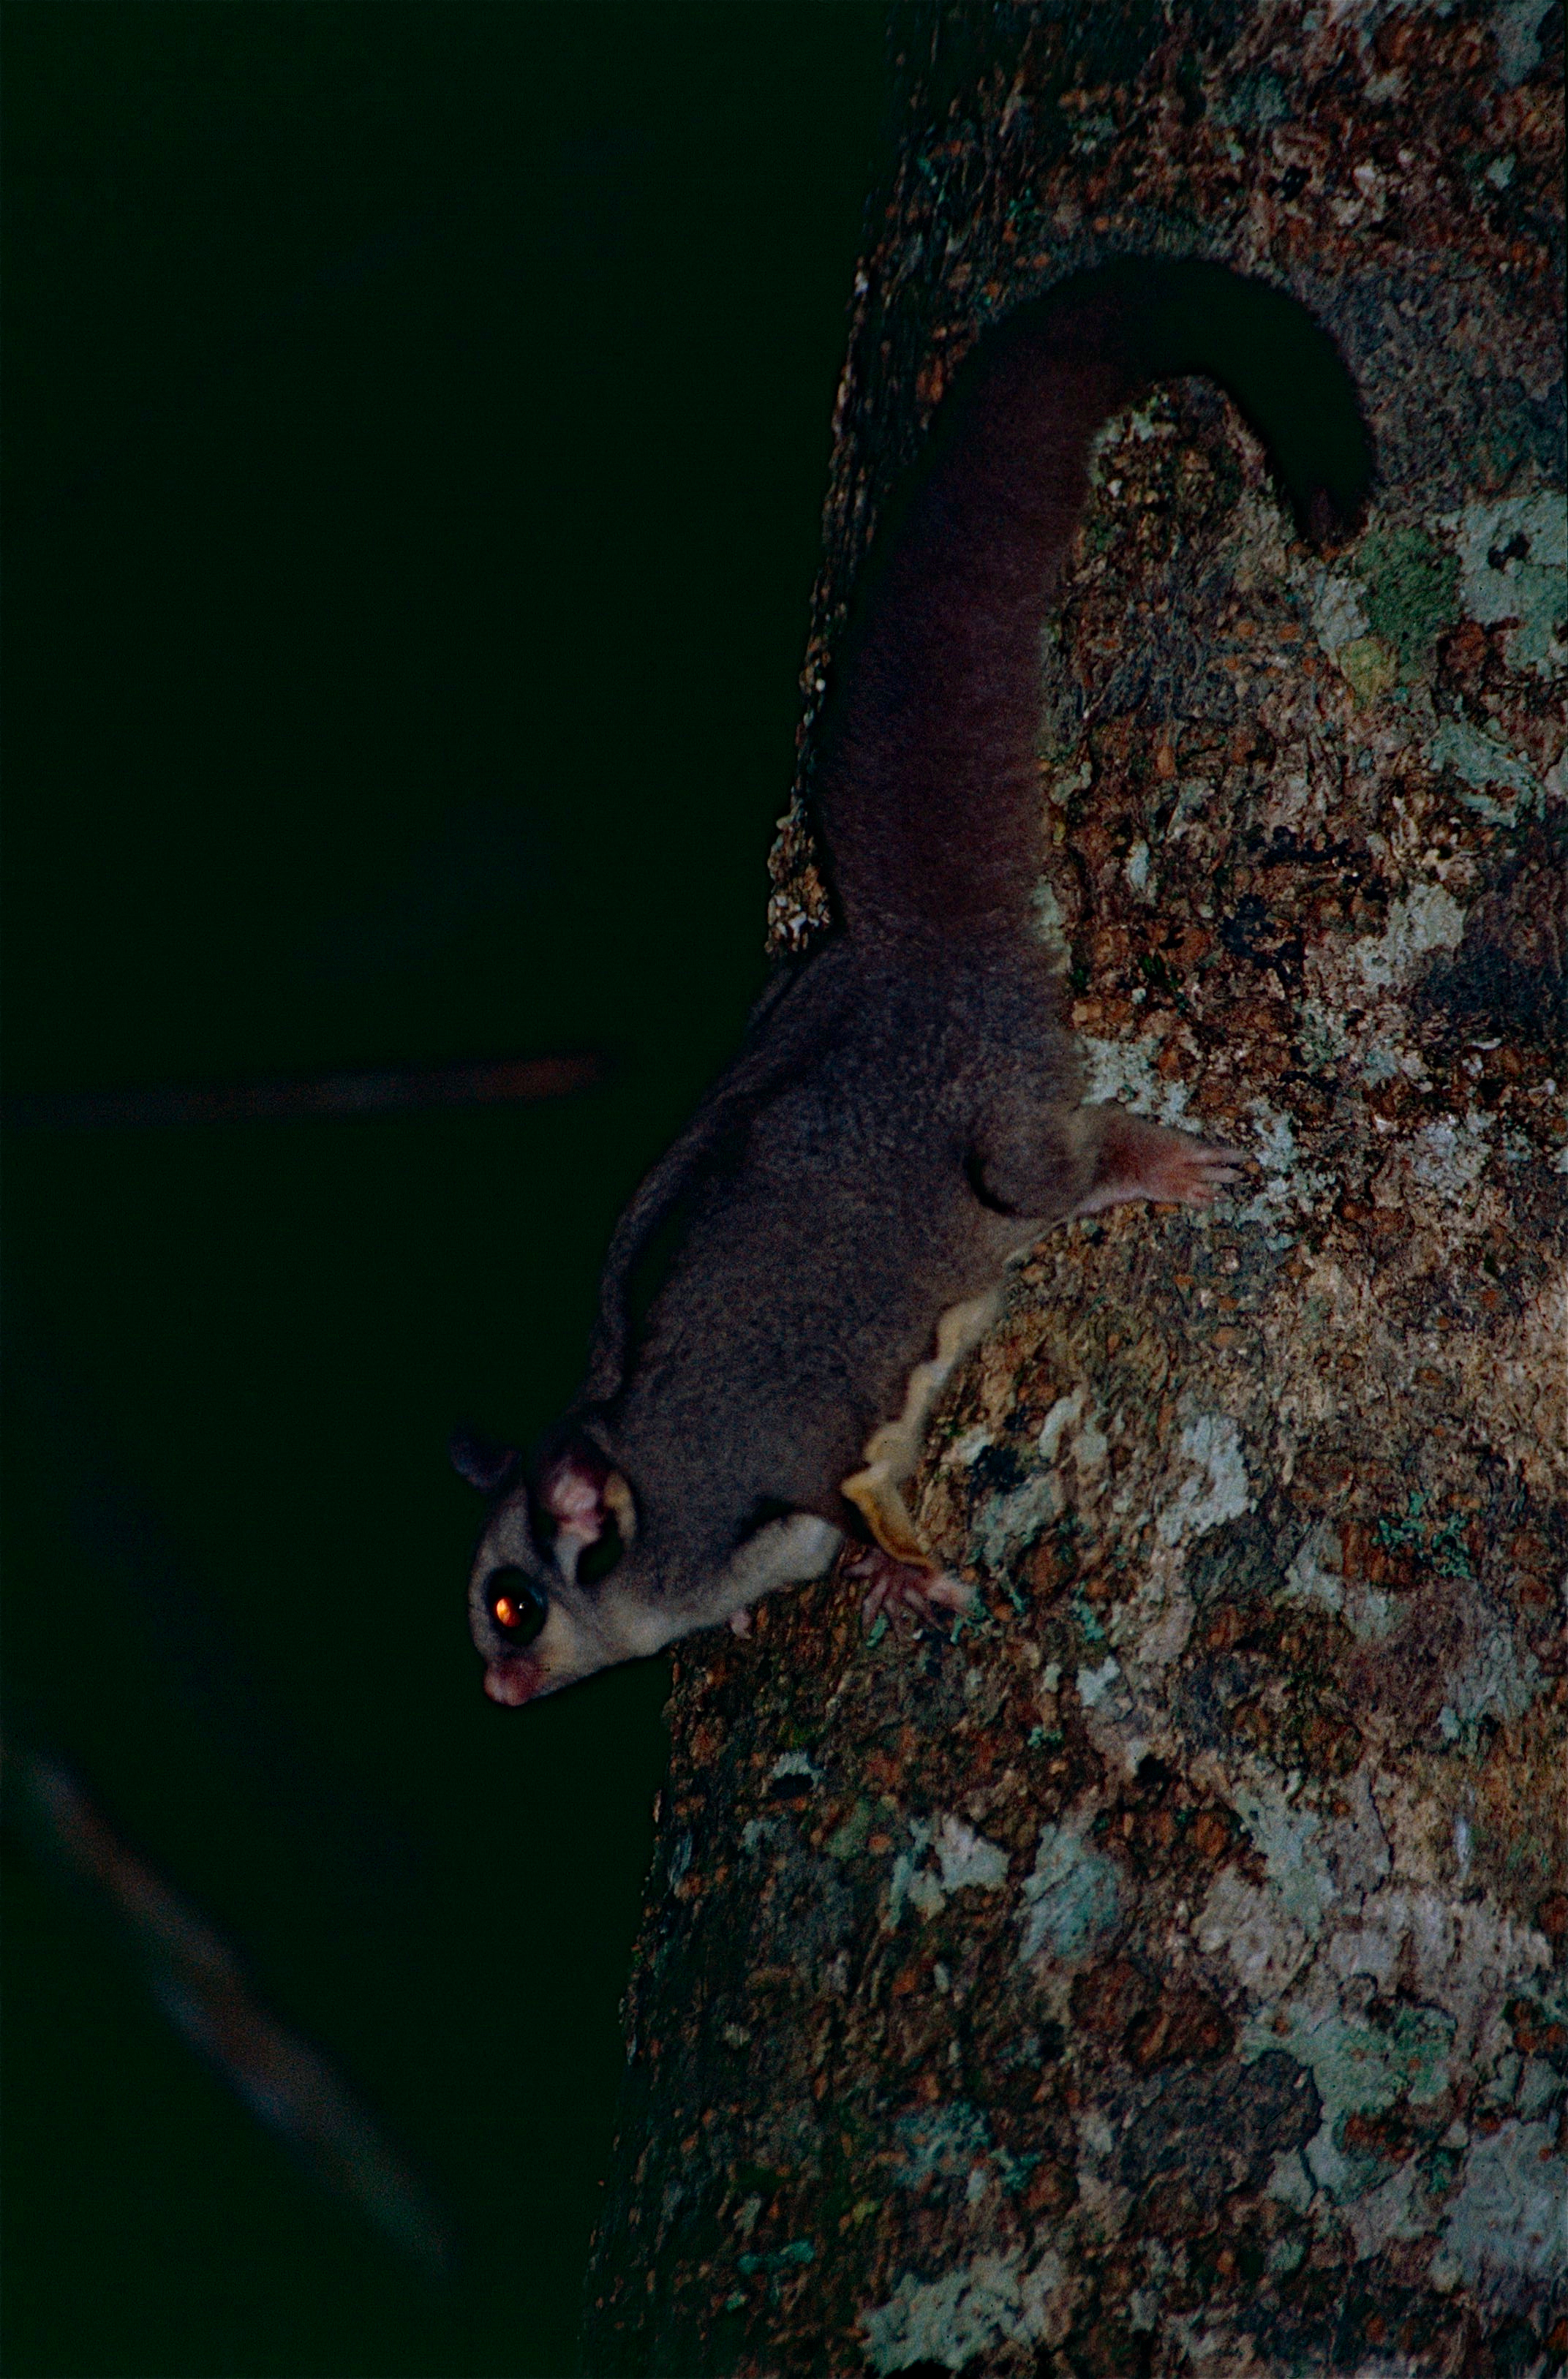 Image of Sugar Glider